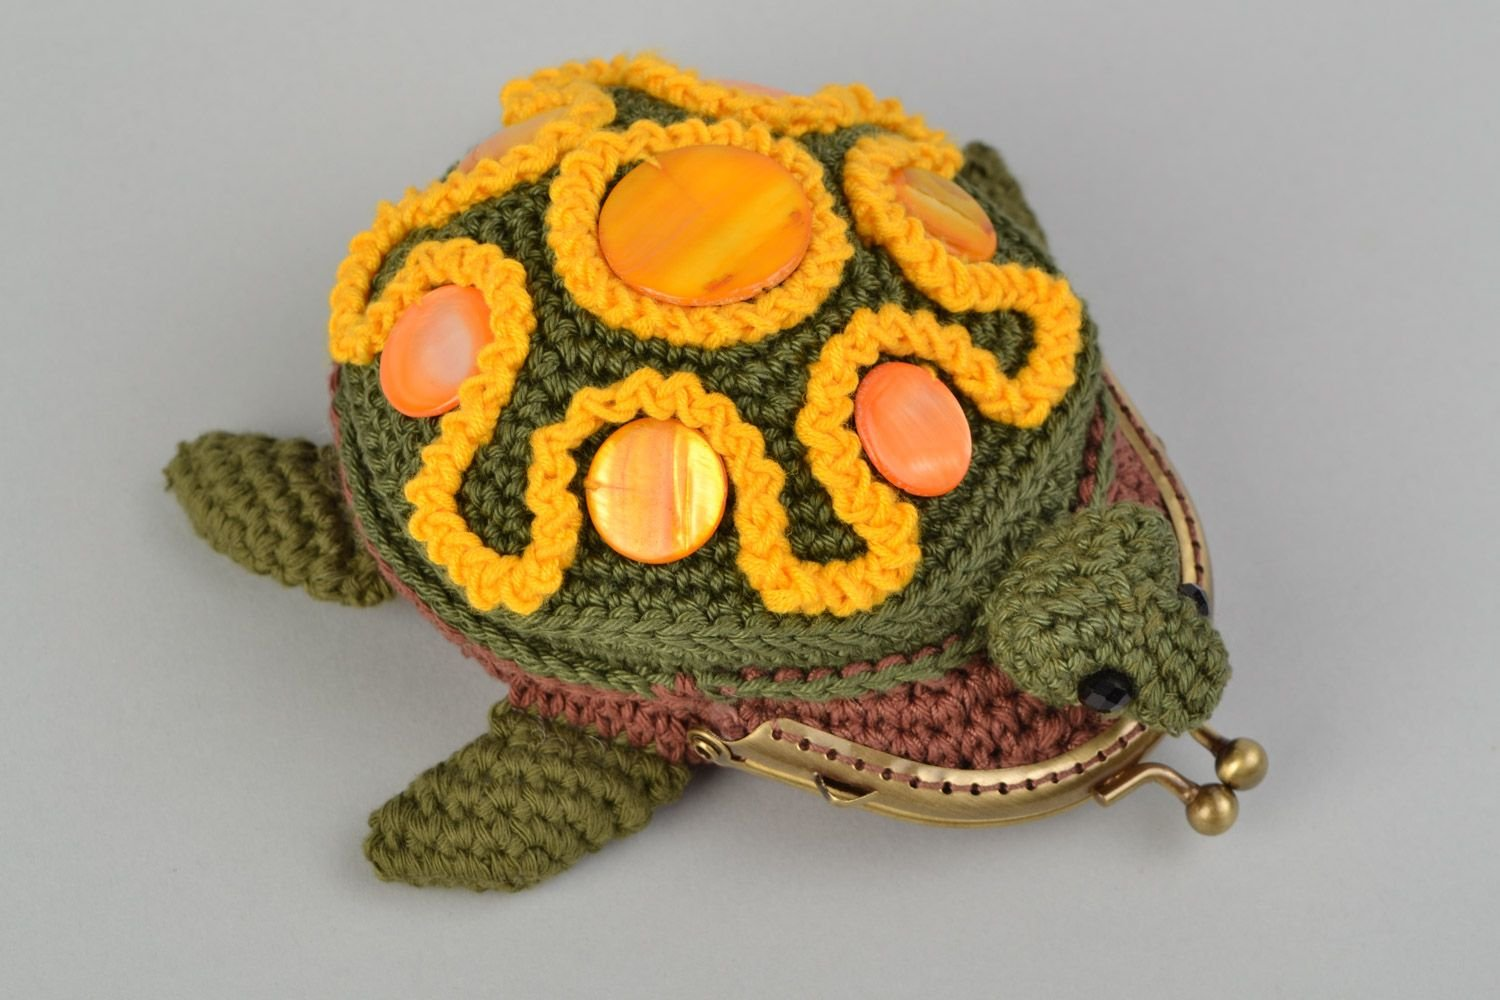 Monedero tejido a ganchillo de algodon multicolor tortuga artesanal: Amazon.es: Hogar